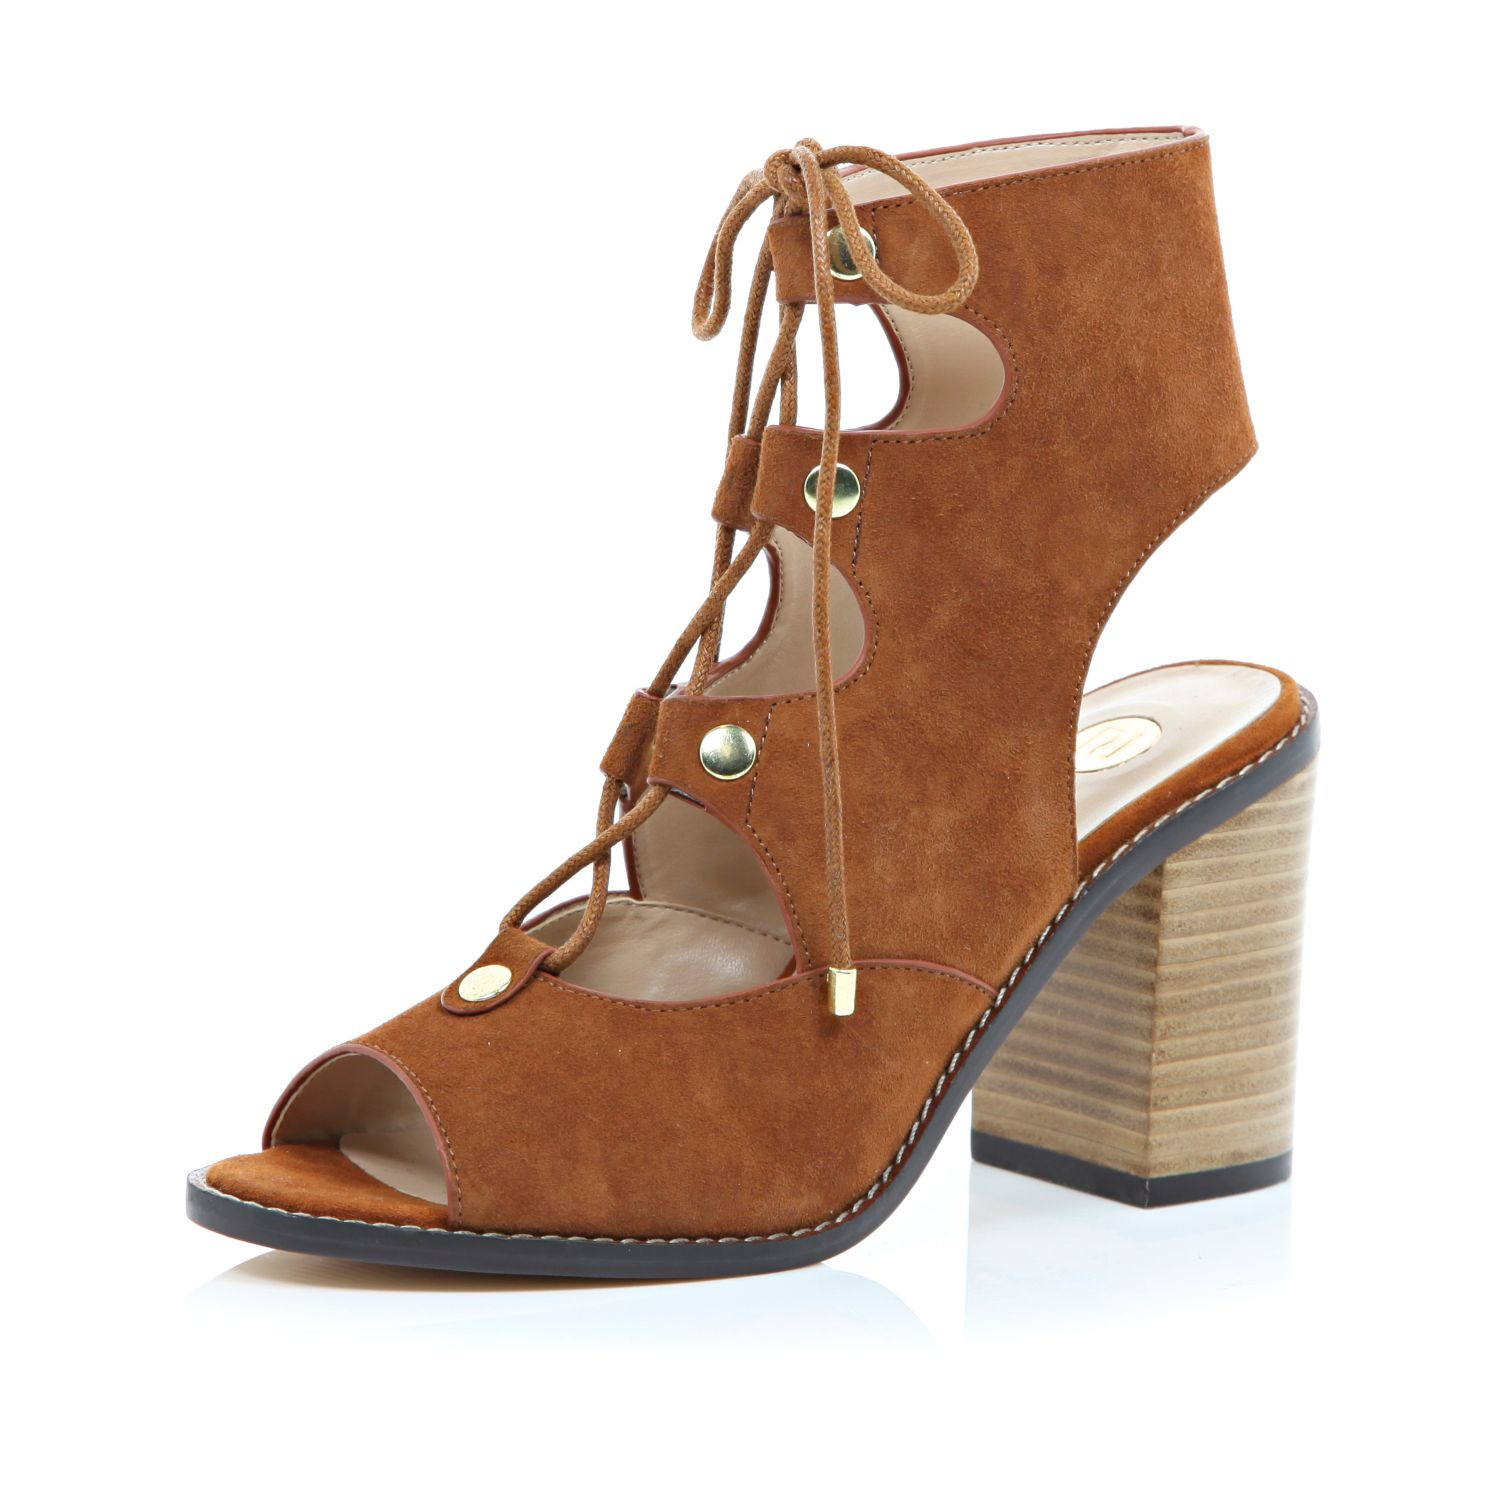 b5716dec2a0 River Island Tan Suede Ghillie Lace Up Heeled Sandals in Brown - Lyst